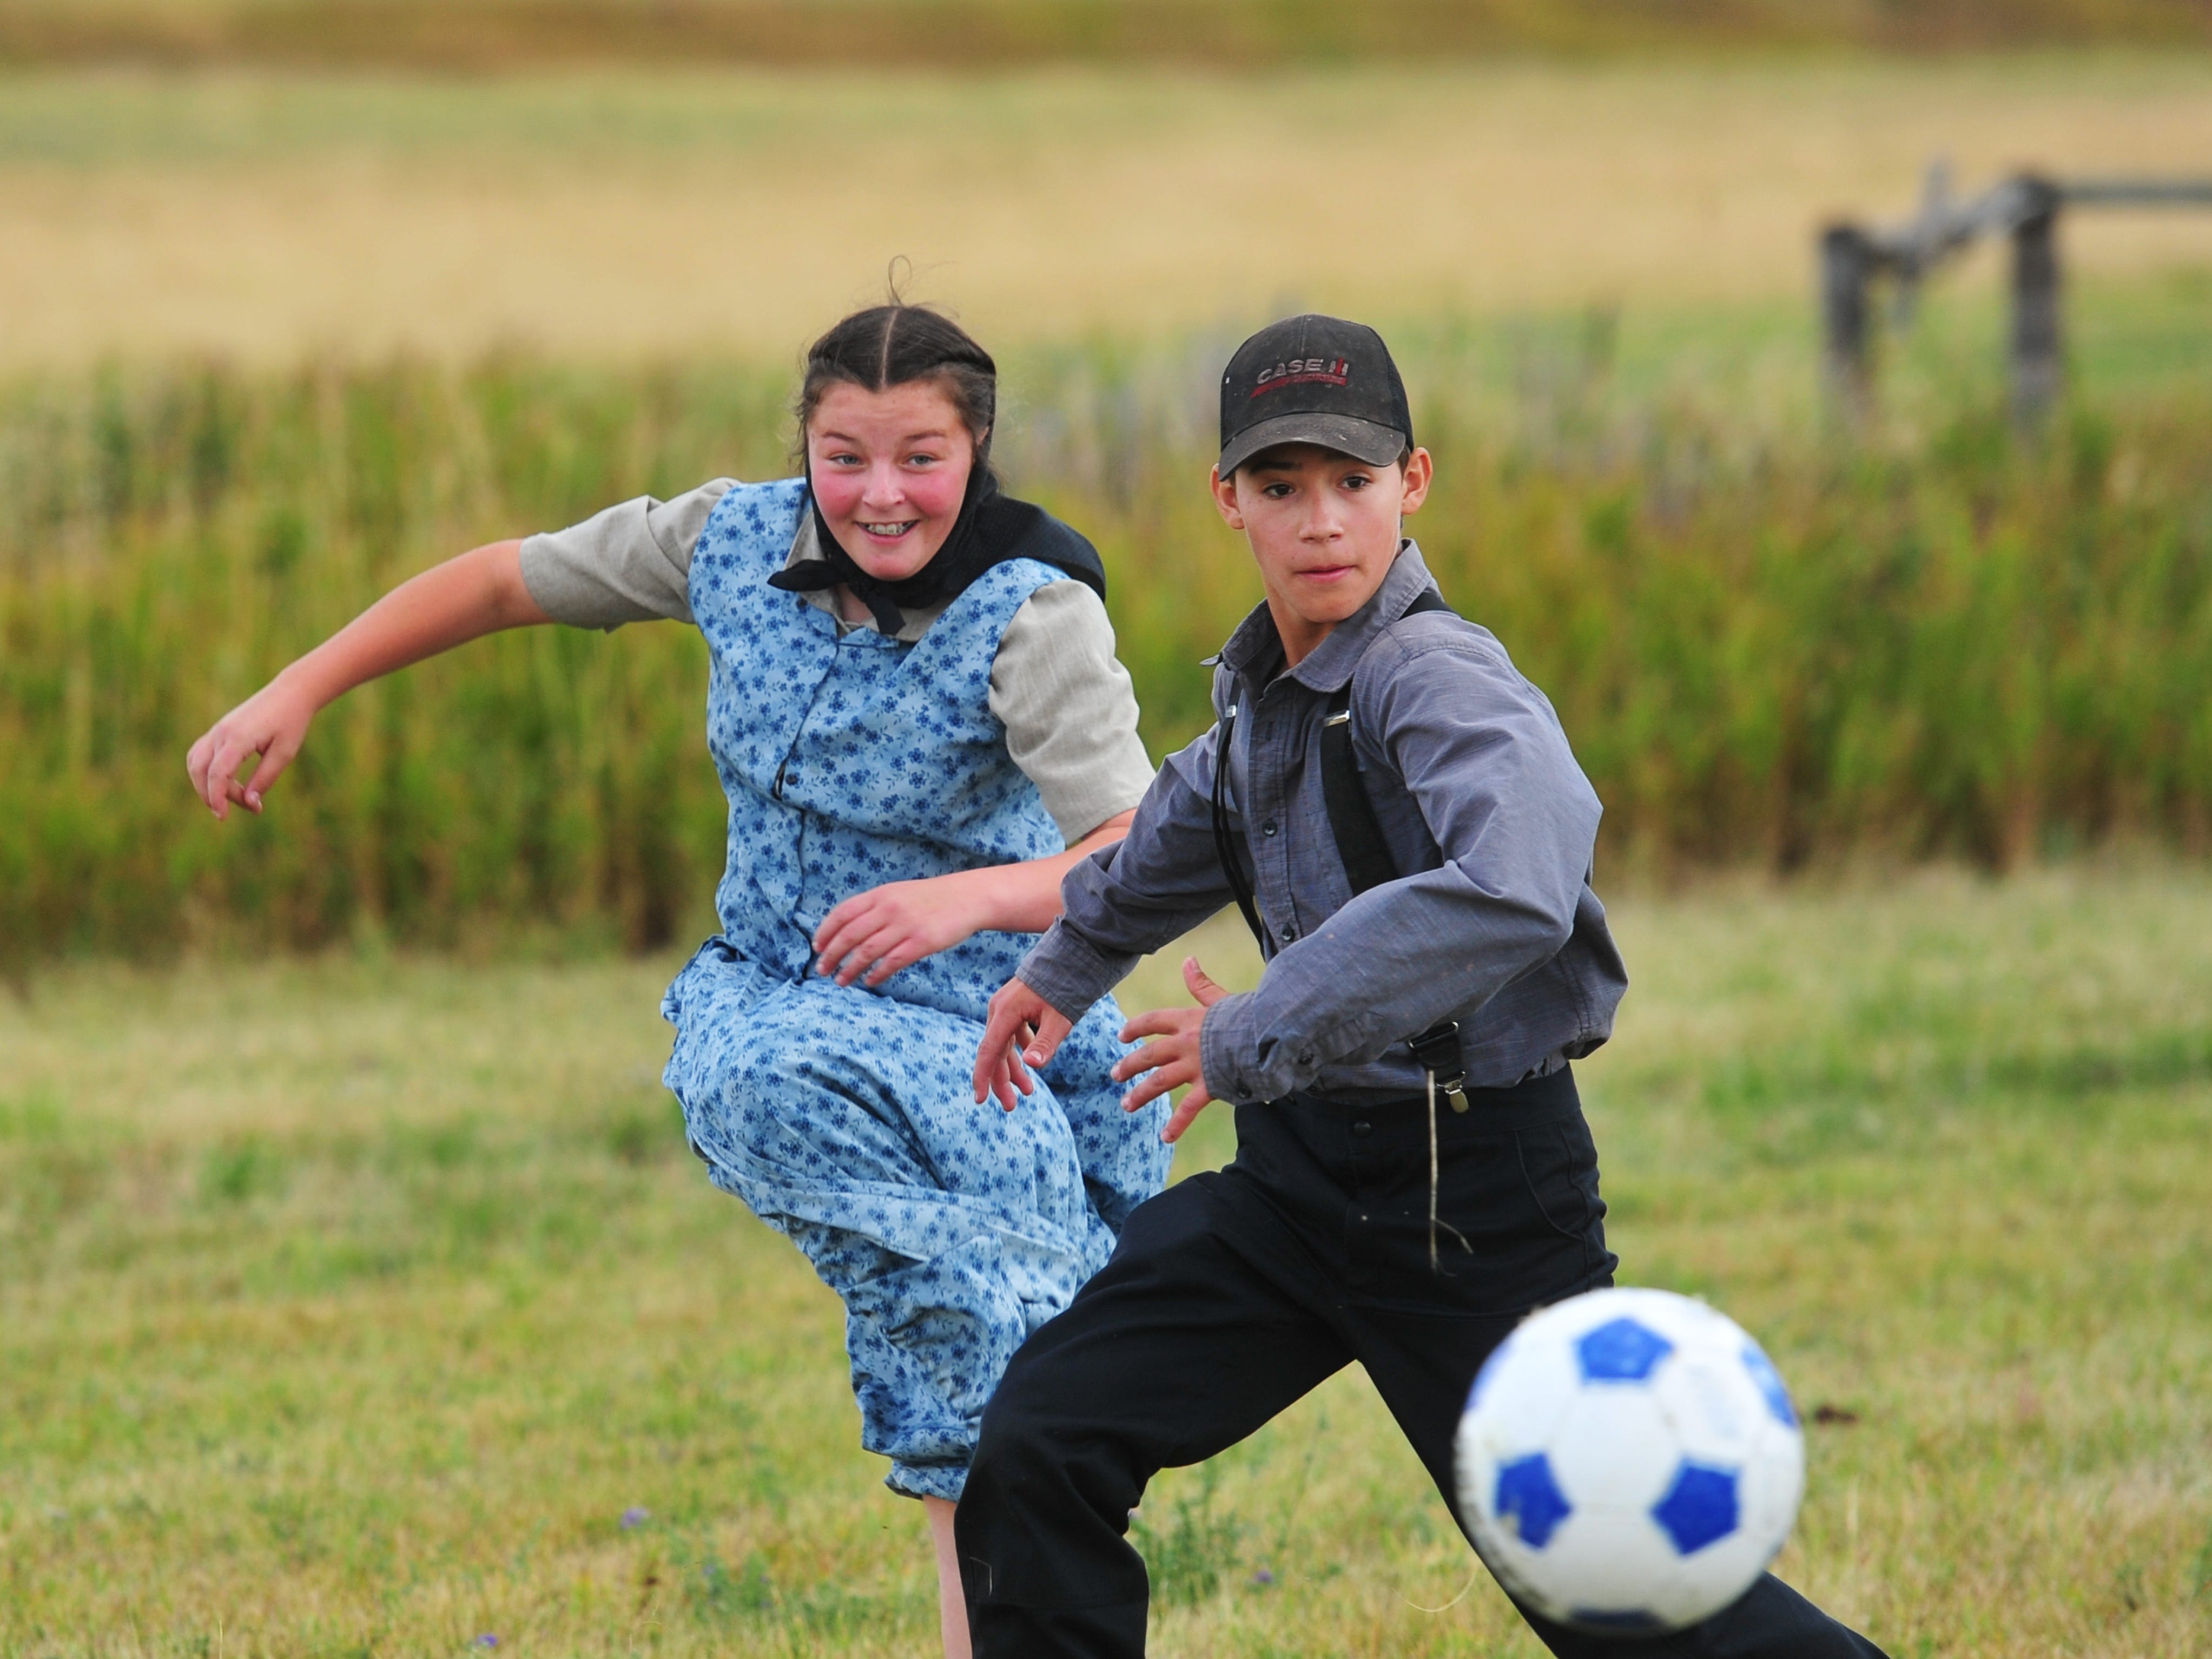 1:27 pm:  Eighth graders Geena and Austin Stahl play soccer during their afternoon recess on Monday, Sept. 17, 2018.  Soccer is one of the more popular sports with the kids in Traci Manseau's class at the Deerfield Hutterite Colony, with teams often being girls versus boys.  Traci Manseau is a teaching veteran of 23 years and she has spent her entire career teaching in one room rural school houses.  She is currently teaching 15 students across seven different grade levels at the Deerfield Hutterite Colony in North Central Montana's Fergus County.